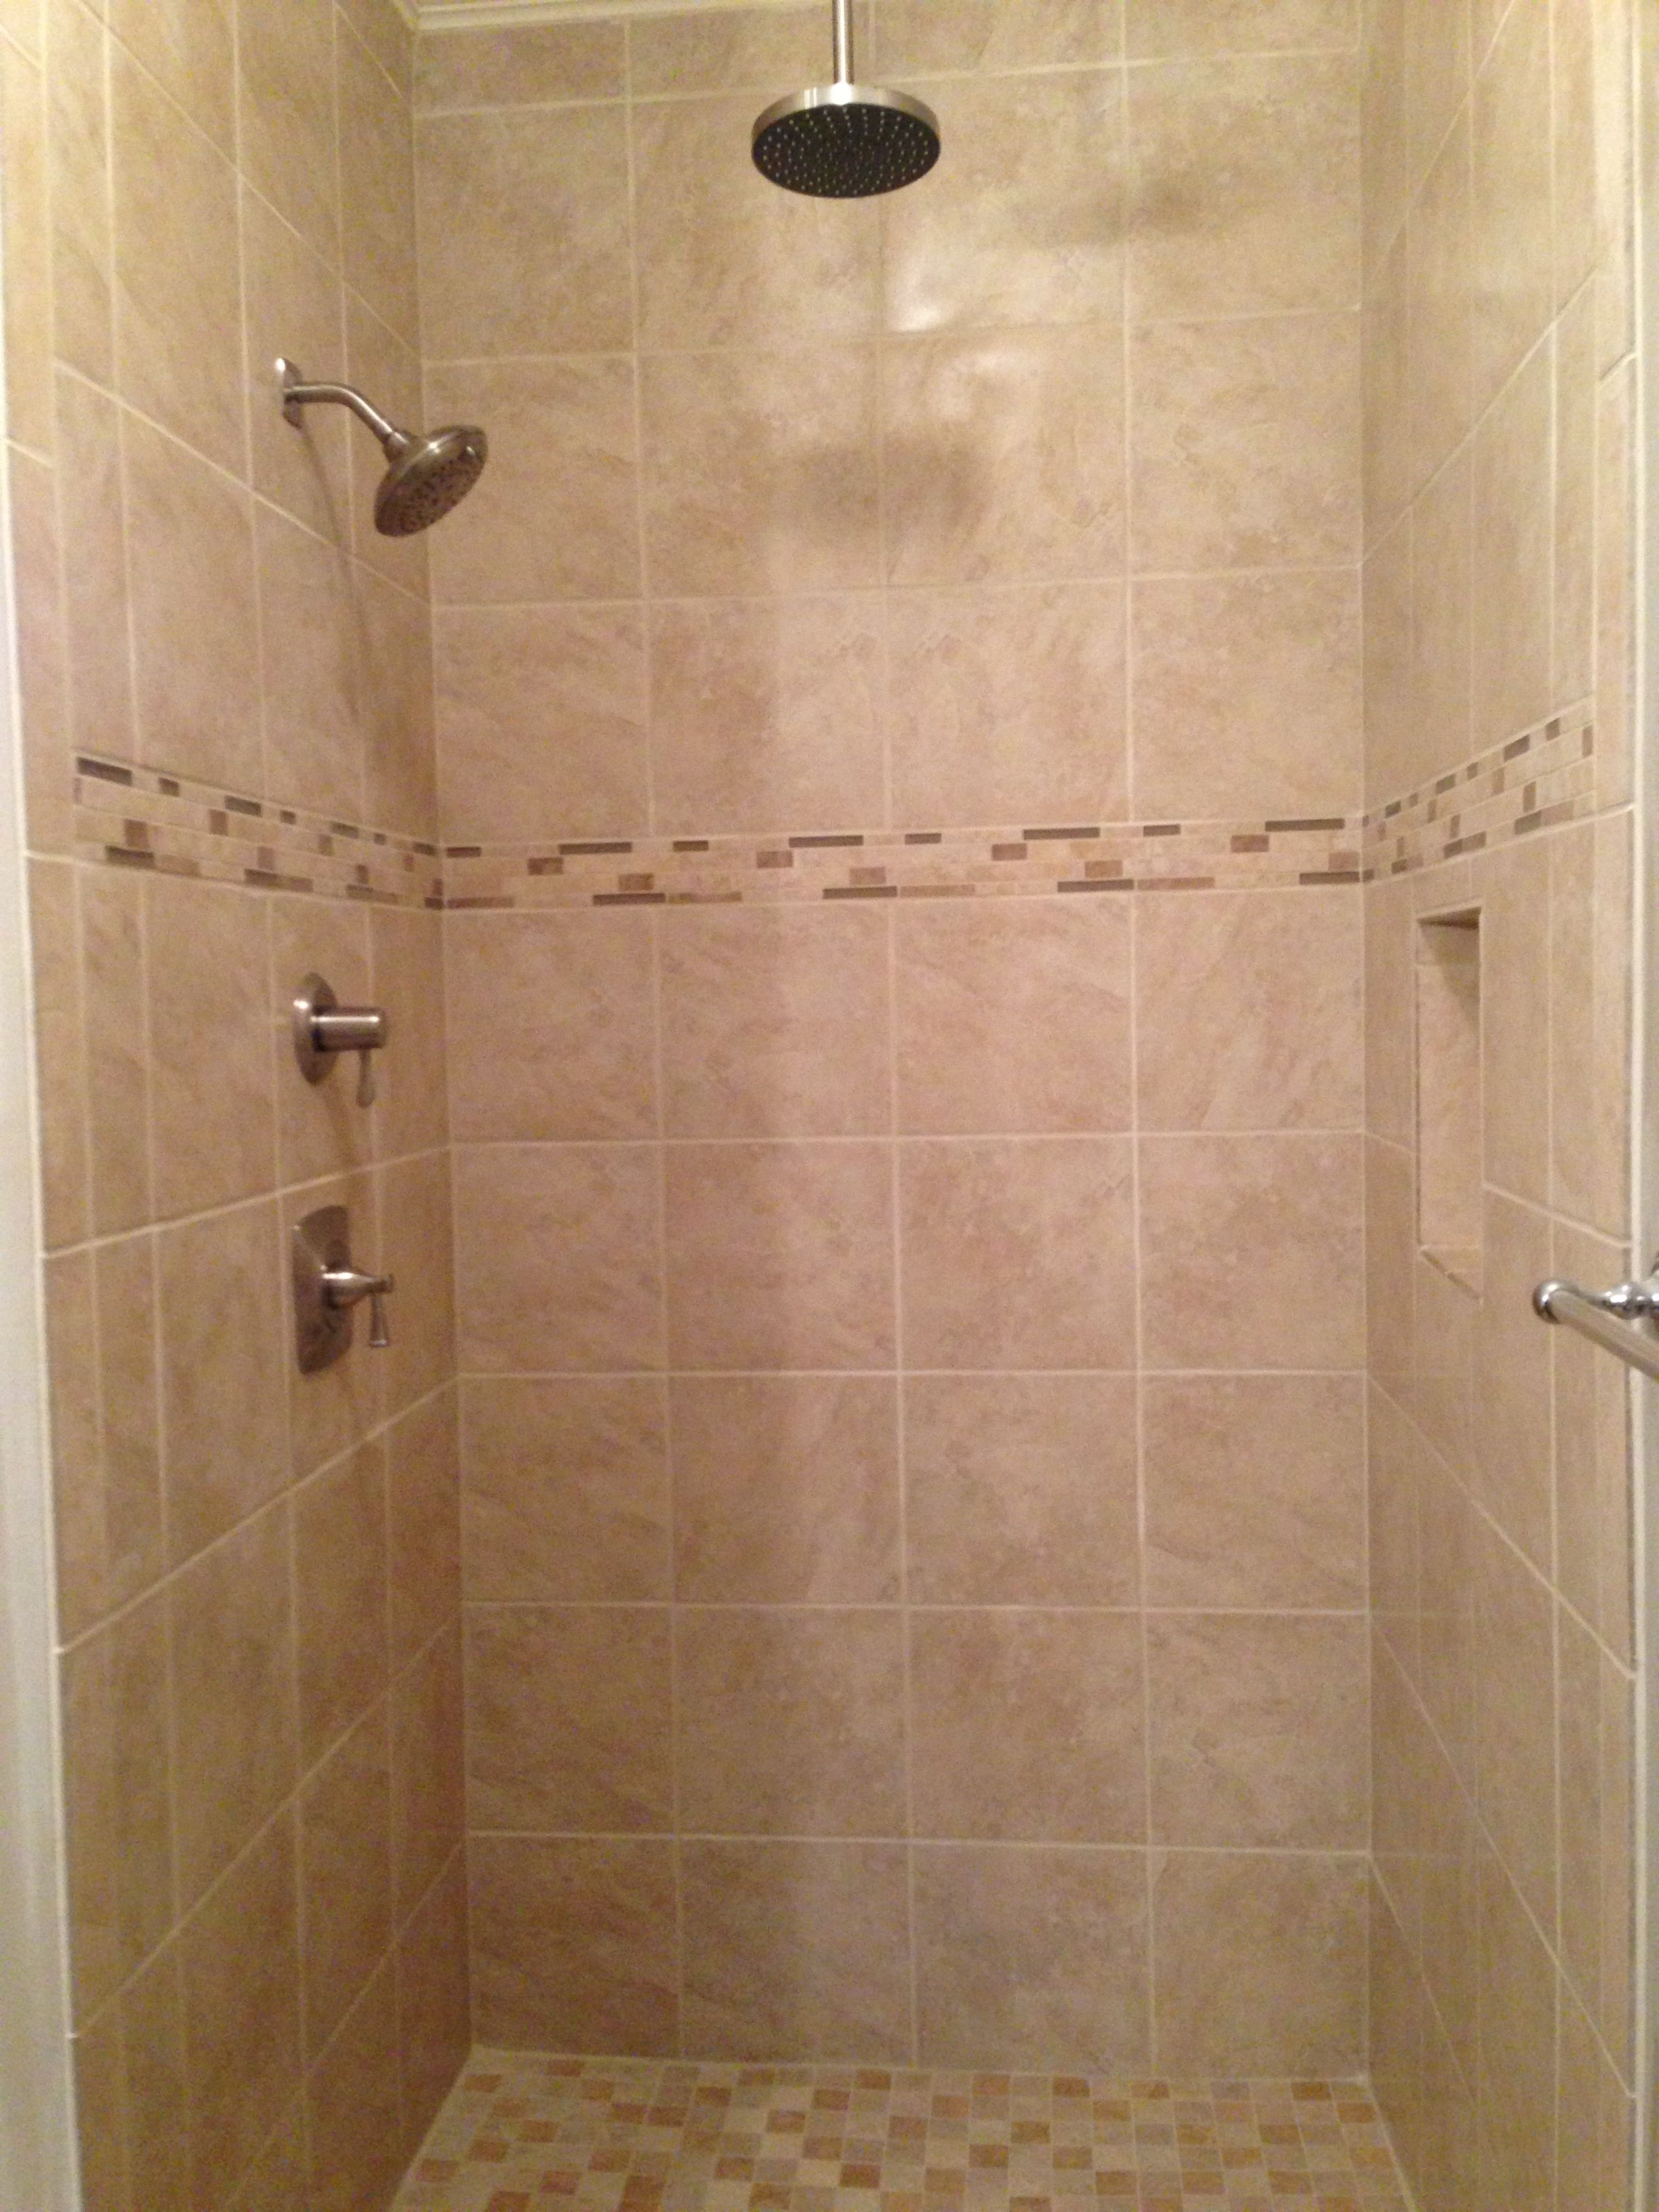 Light Beige Tile Shower With Rain Head Shower Fixture Beige Tile Shower Beige Tile Bathroom Remodel Bedroom Small Bedroom Remodel